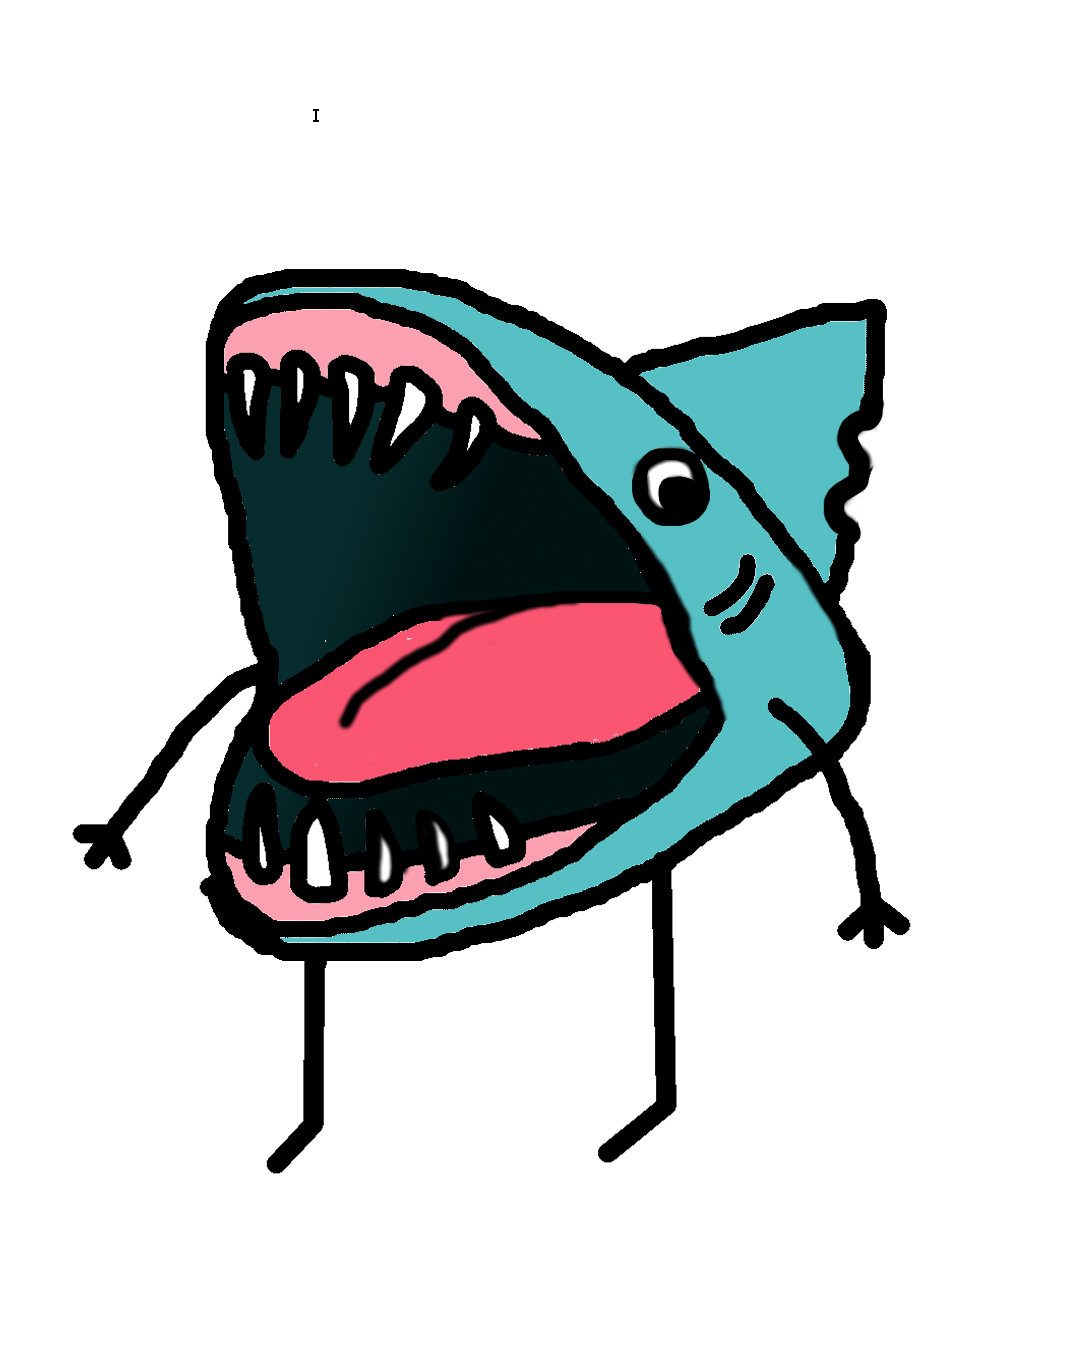 Cloudy clipart scary. Shark graphic t shirt